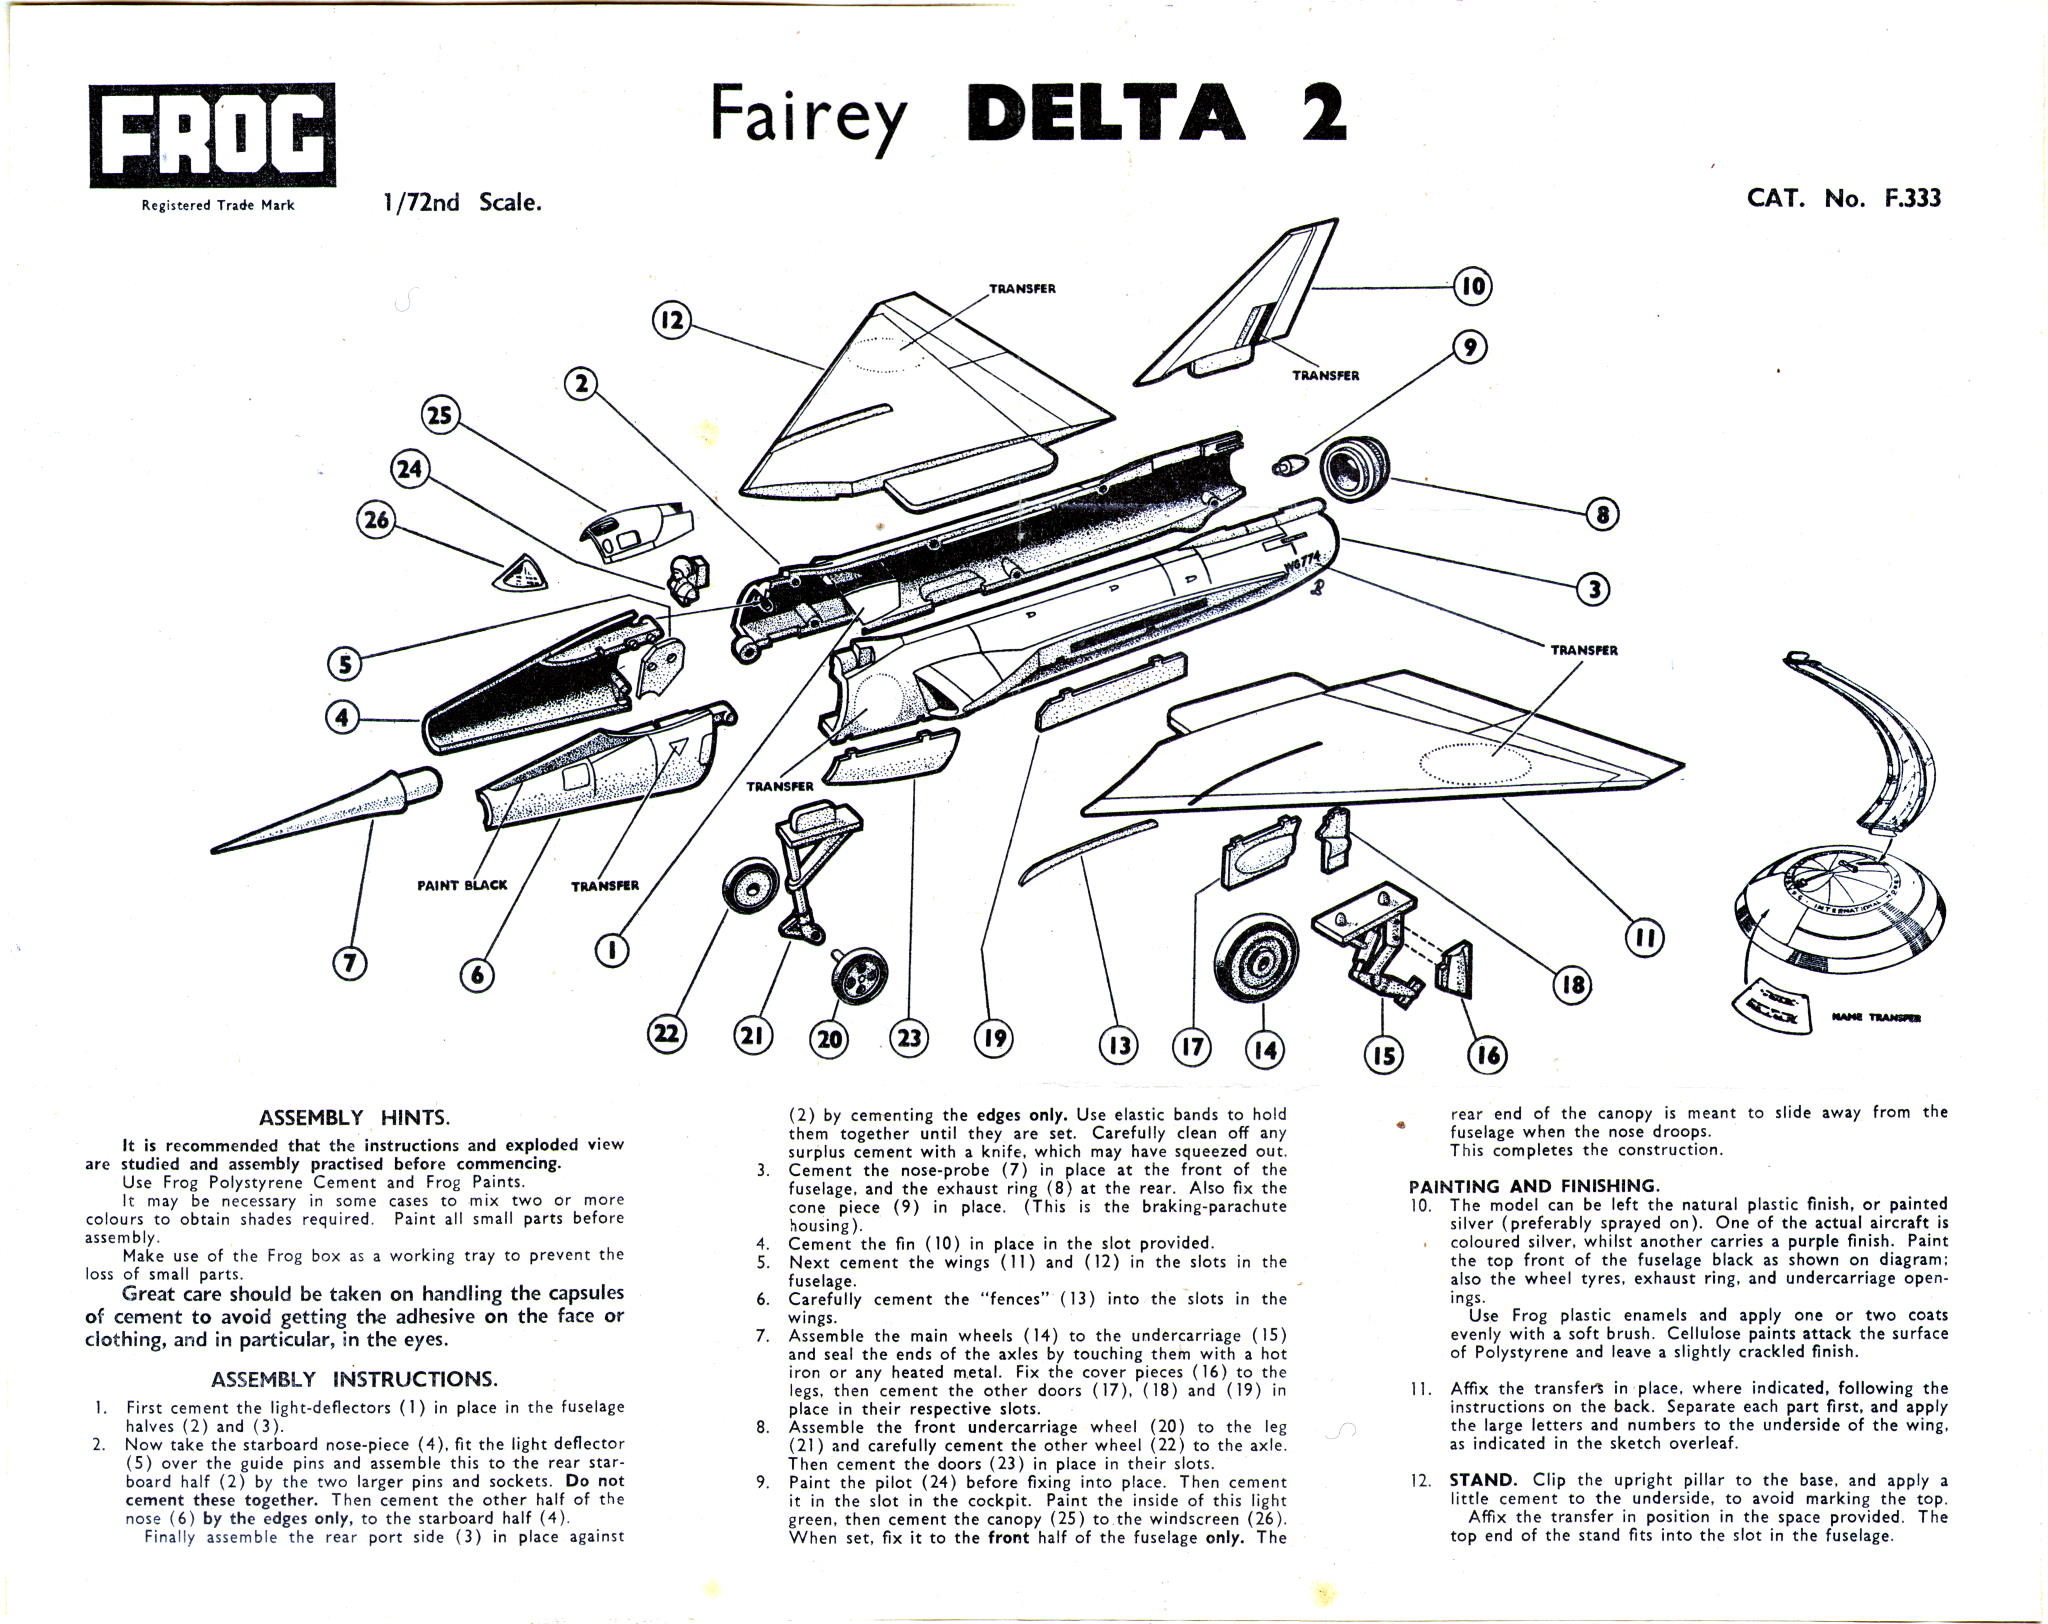 Коробка FROG F333 Fairey Delta - Research Aircraft with Gold Tokens, IMA, 1965-66